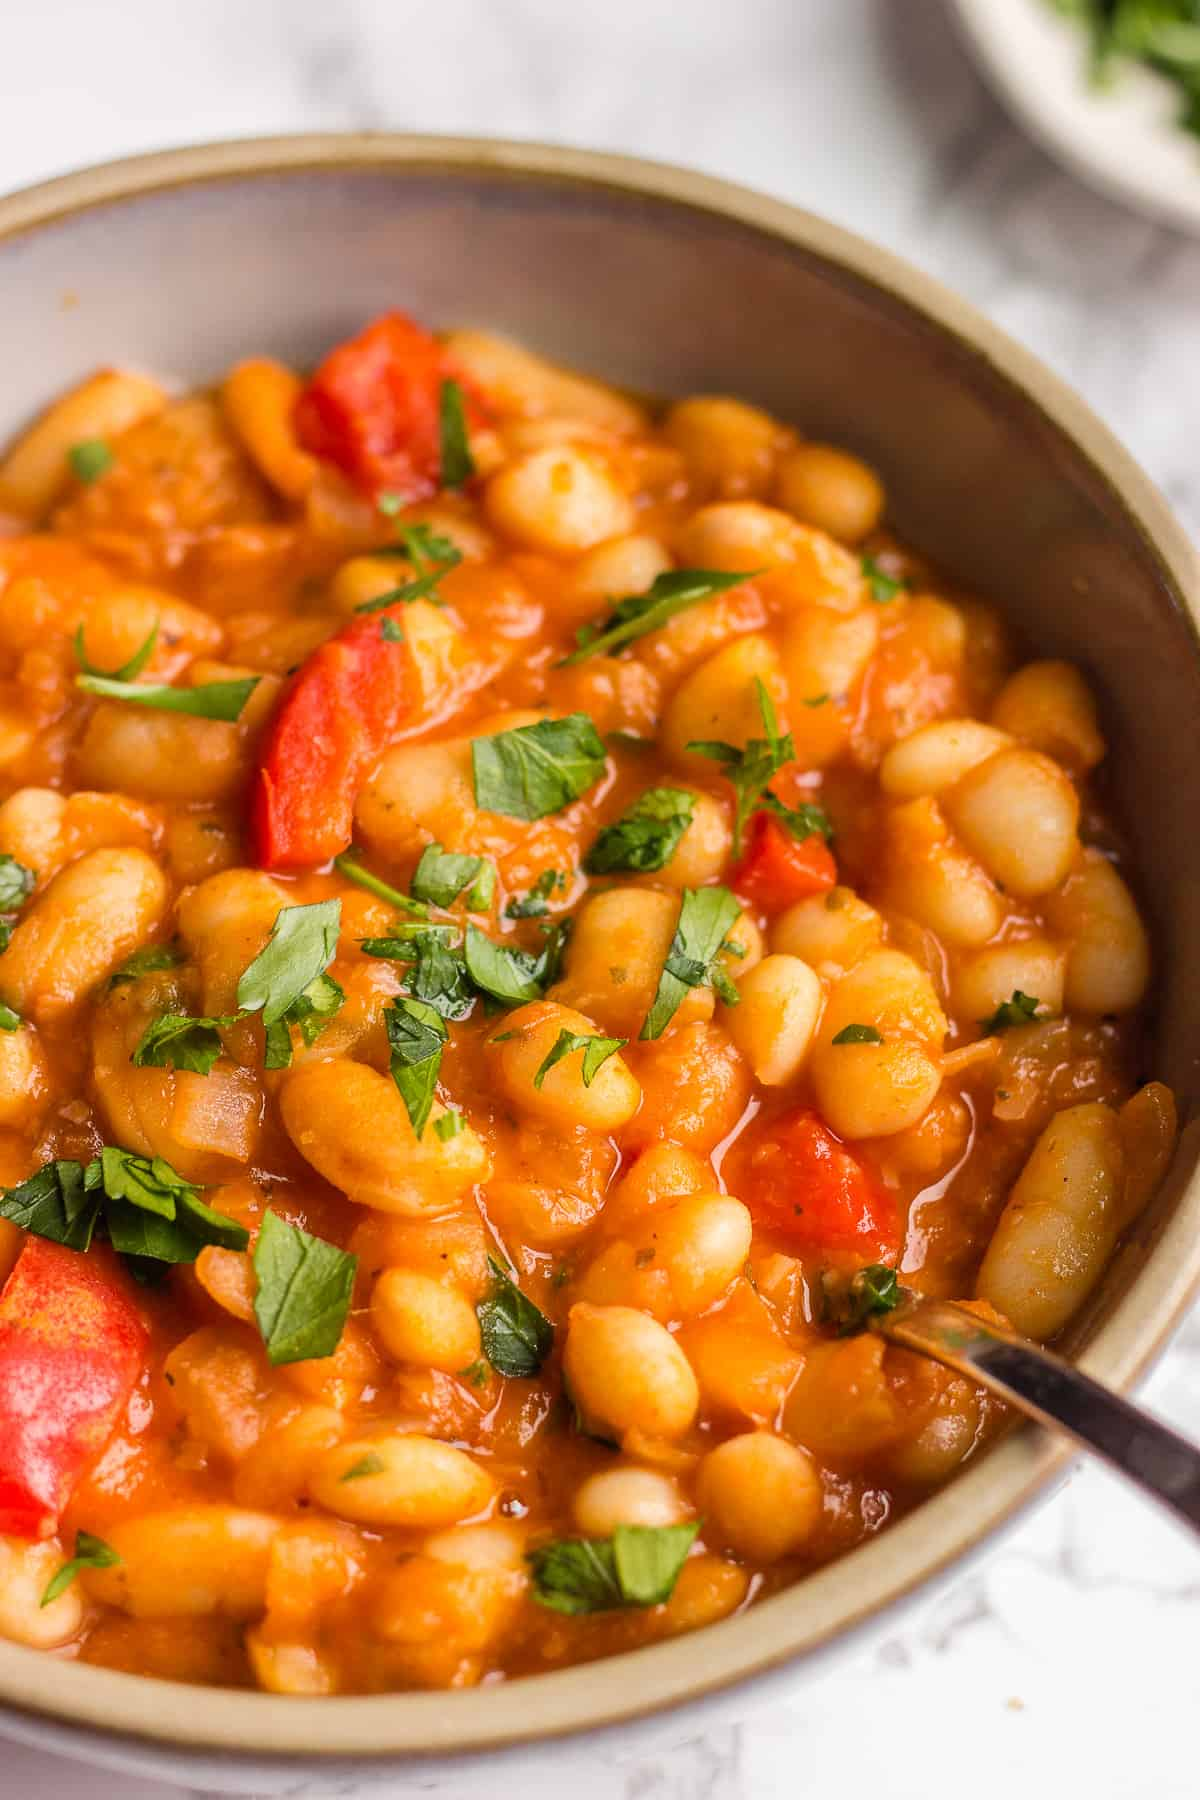 Beans cooked with tomato juice and spices in a grey bowl on a white background